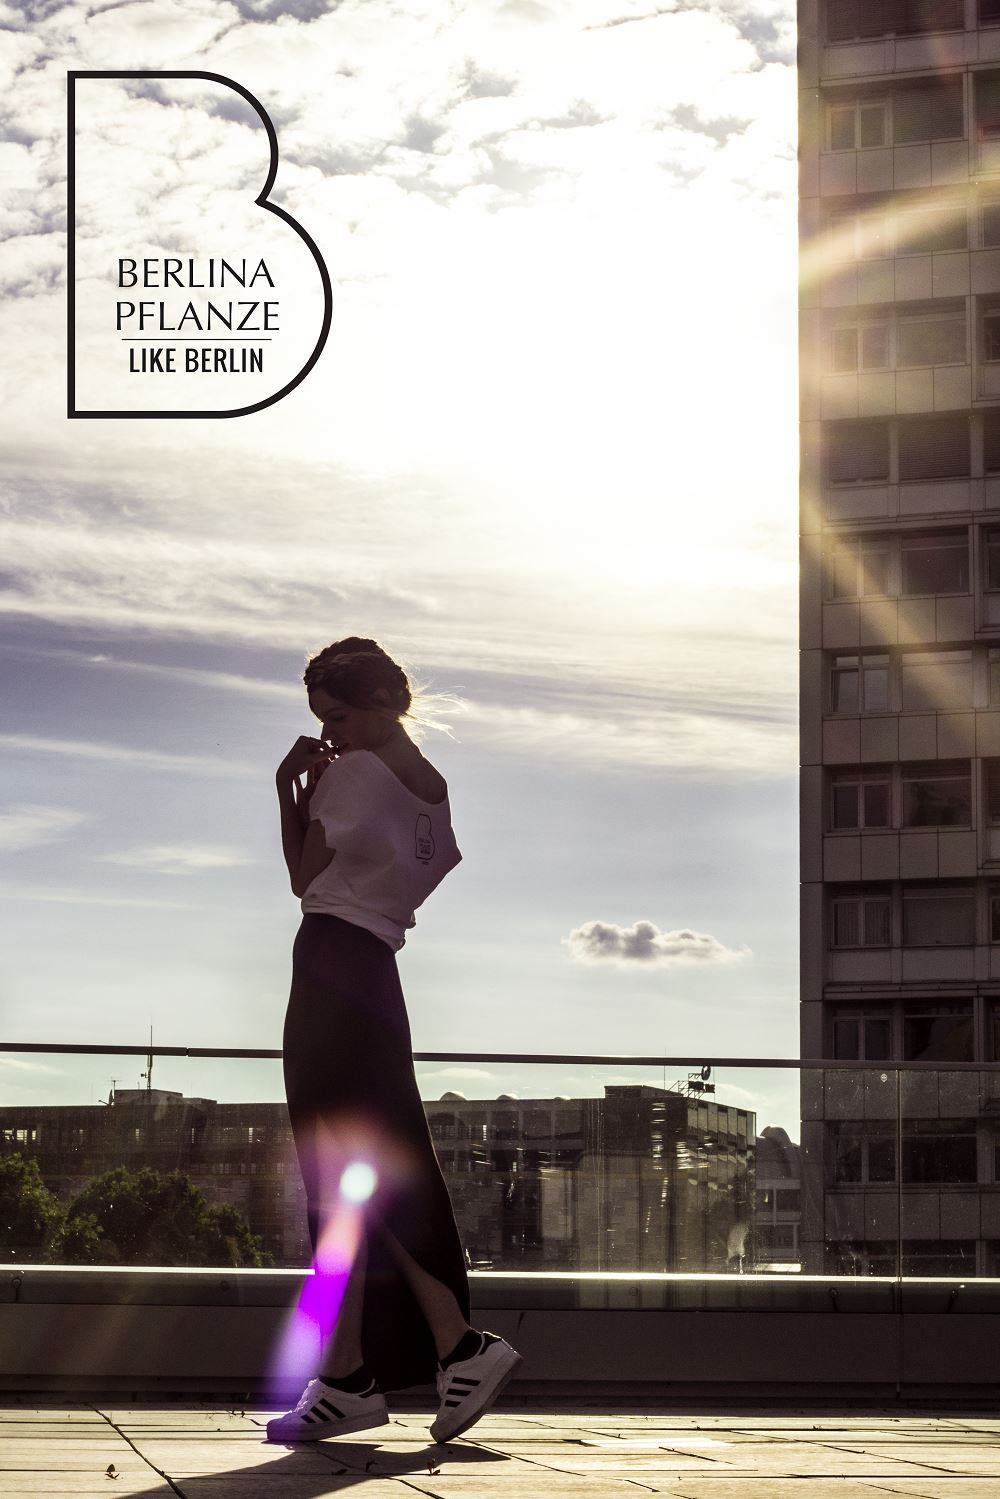 BERLINA PFLANZE und LIKE.BERLIN B-Shirt Kampagne Crowdfunding